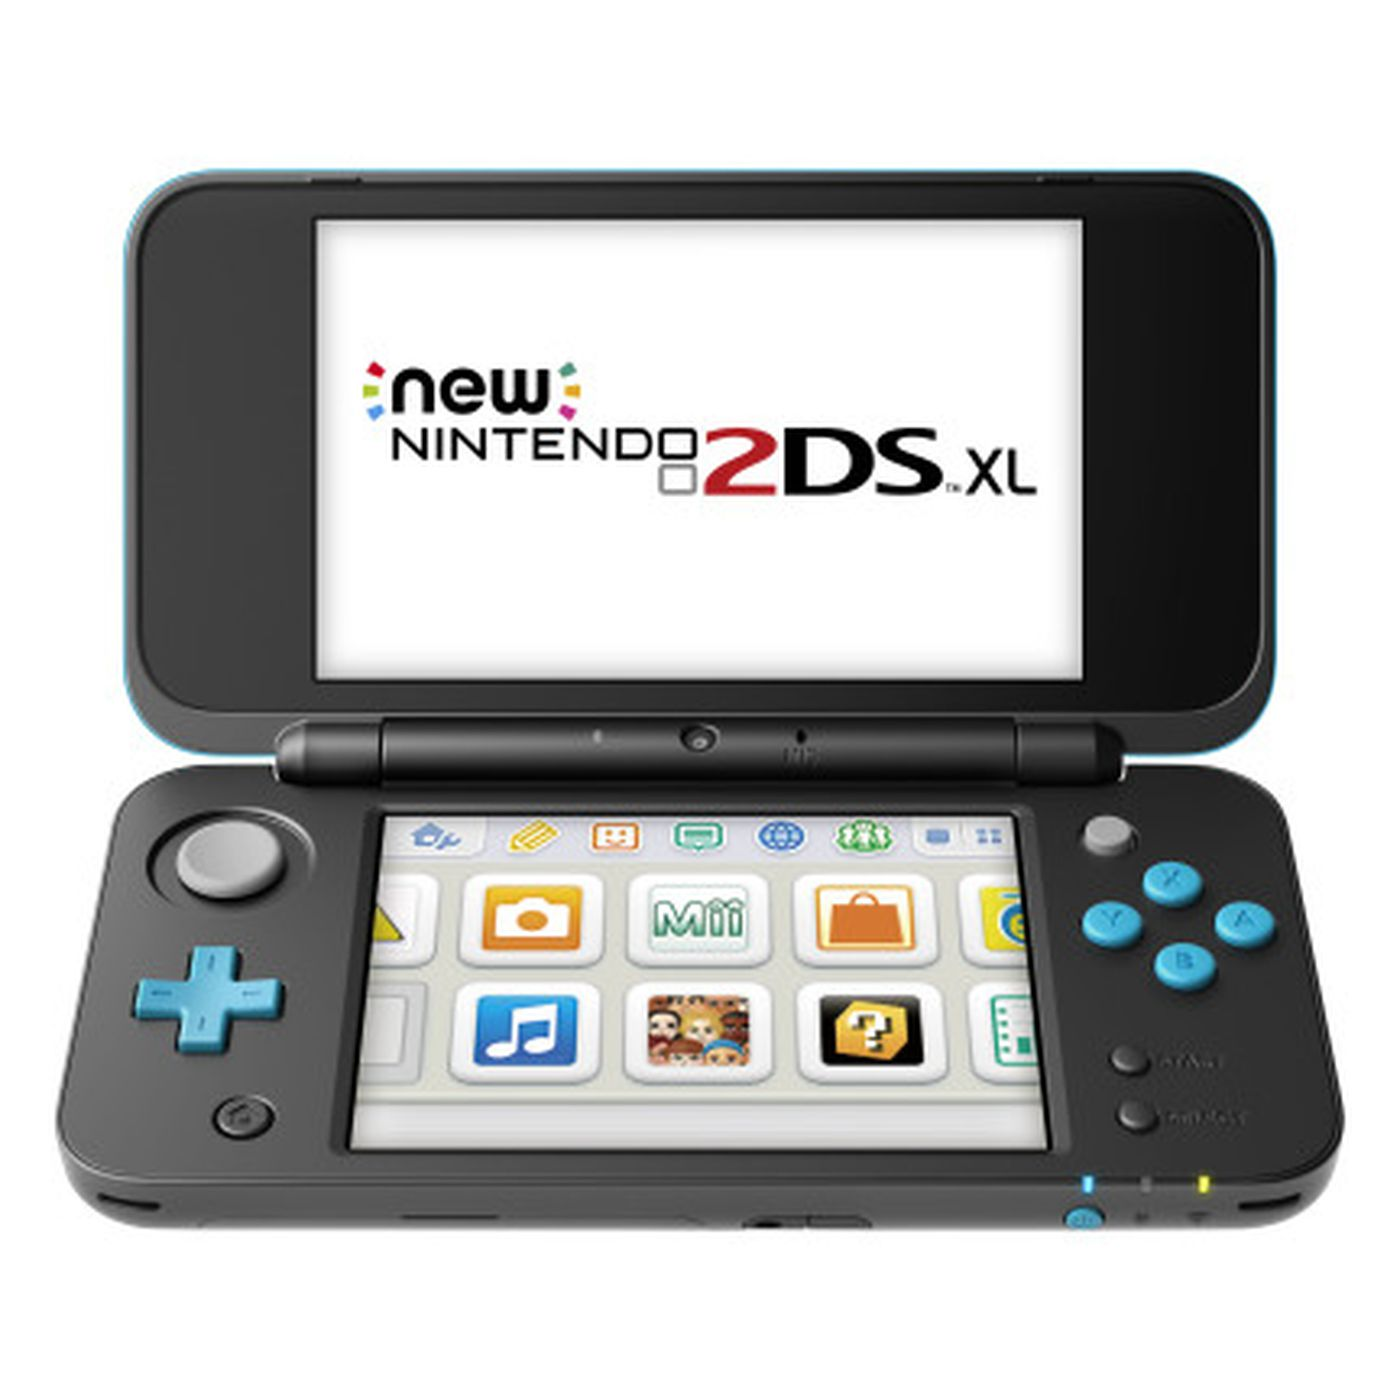 Nintendo announces New 2DS XL for $149 99 - The Verge